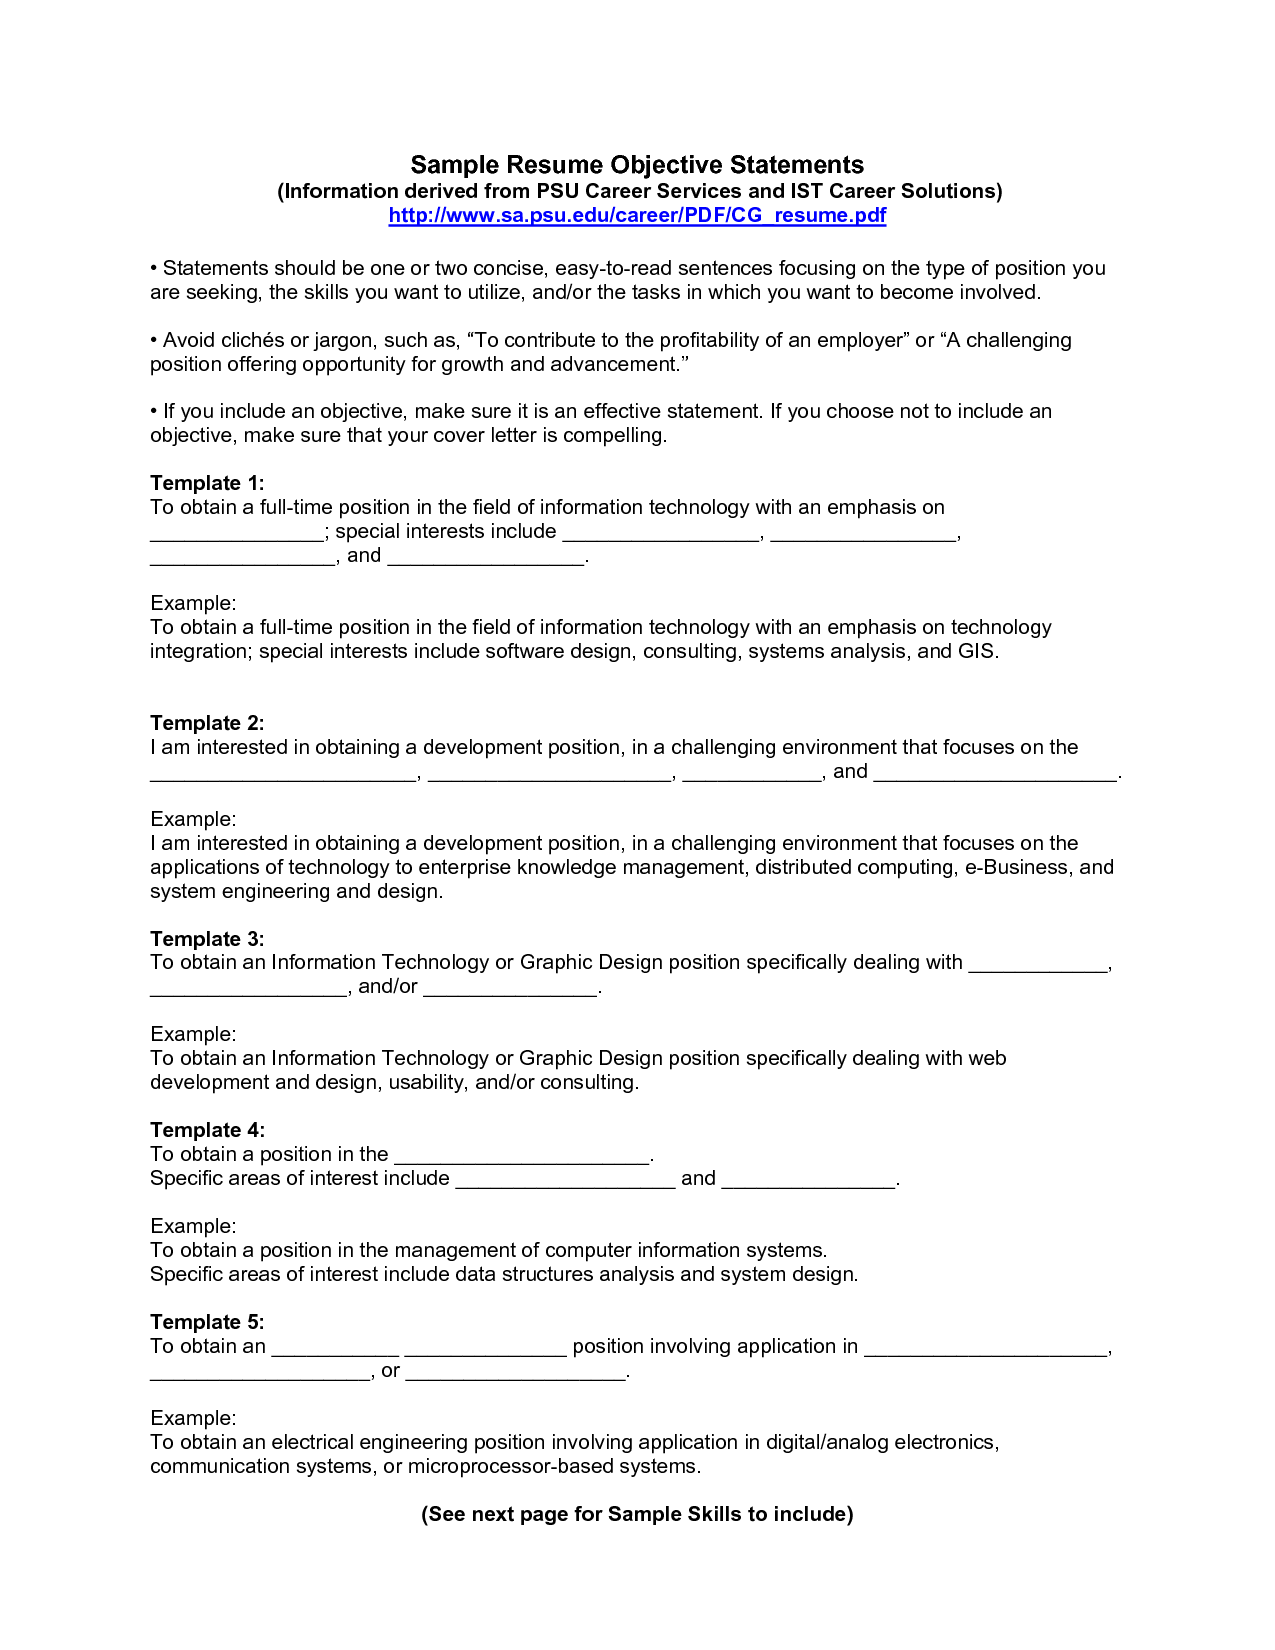 medical assistant job resume sample objective statements - Resume How To Write Objective